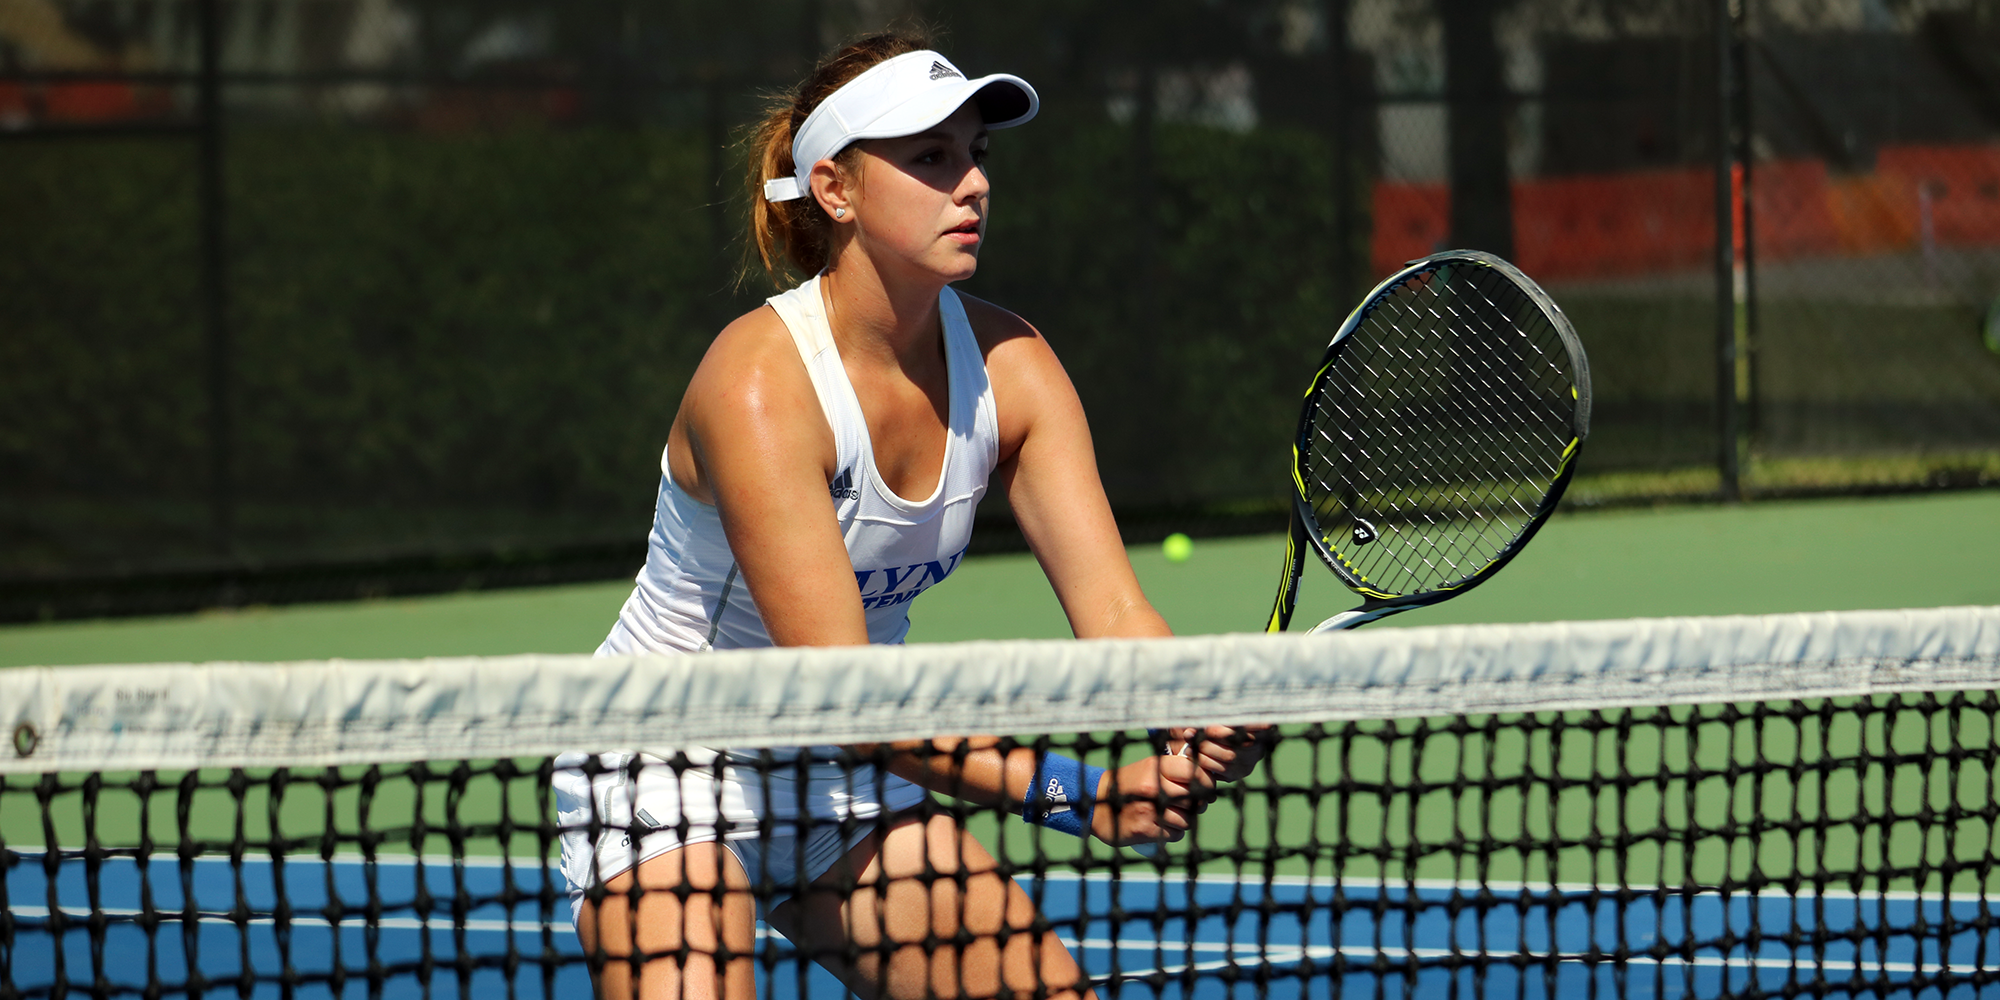 Women's Tennis Continues Play at PBA; Liga & Petrackova Advance to Singles Finals